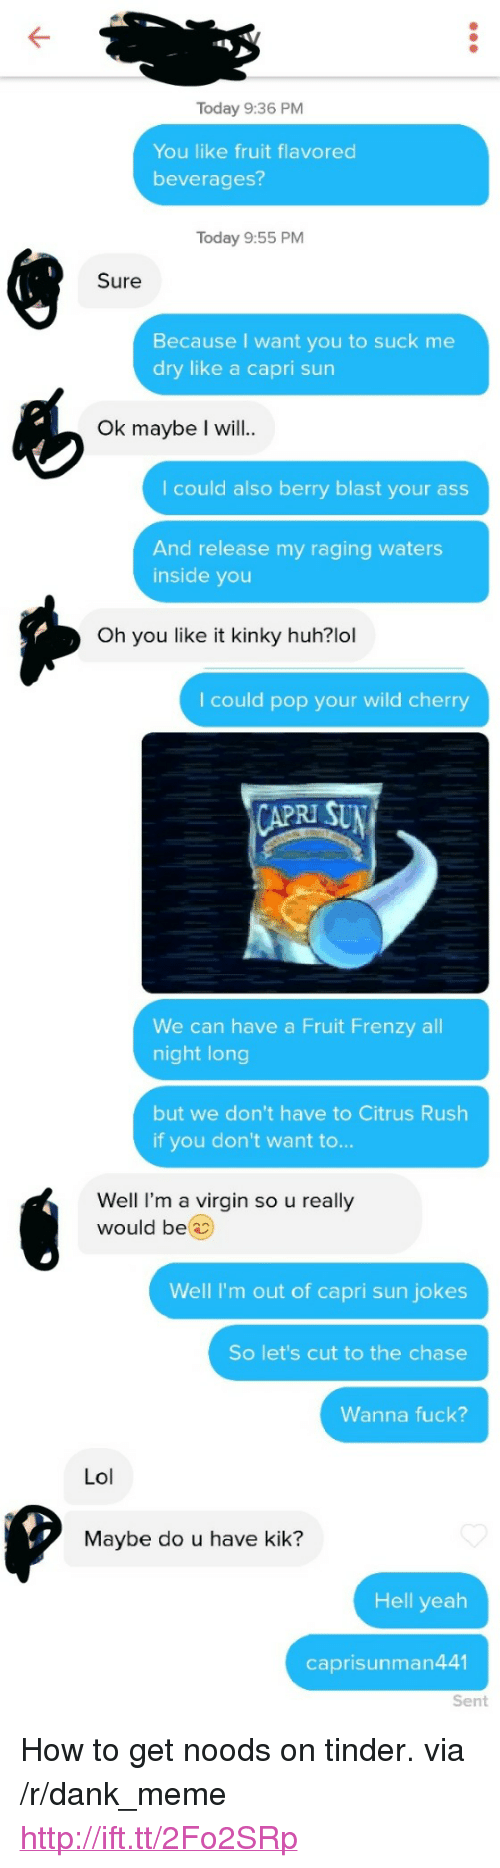 """Ass, Dank, and Huh: Today 9:36 PM  You like fruit flavored  beverages?  Today 9:55 PM  Sure  Because I want you to suck me  dry like a capri sun  Ok maybe I will..  I could also berry blast your ass  And release my raging waters  inside you  Oh you like it kinky huh?lol  I could pop your wild cherry  RI SU  We can have a Fruit Frenzy all  night long  but we don't have to Citrus Rush  if you don't want to...  Well I'm a virgin so u really  would be  Well I'm out of capri sun jokes  So let's cut to the chase  Wanna fuck?  Lol  Maybe do u have kik?  Hell yeah  caprisunman441  Sent <p>How to get noods on tinder. via /r/dank_meme <a href=""""http://ift.tt/2Fo2SRp"""">http://ift.tt/2Fo2SRp</a></p>"""